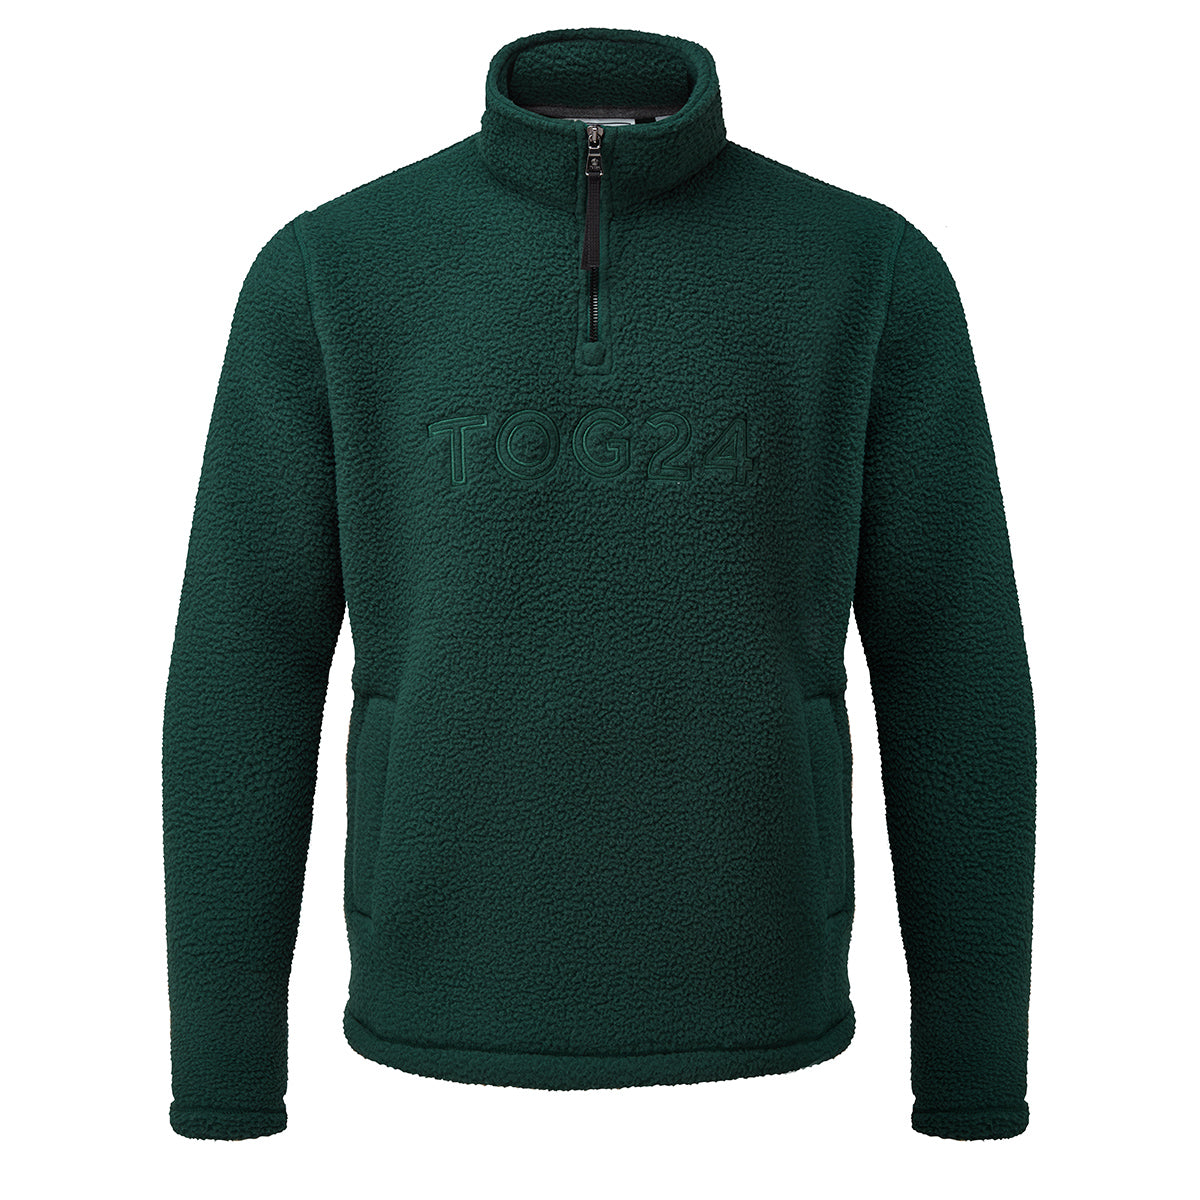 Kirkstall Mens Fleece Zip Neck - Forest image 4